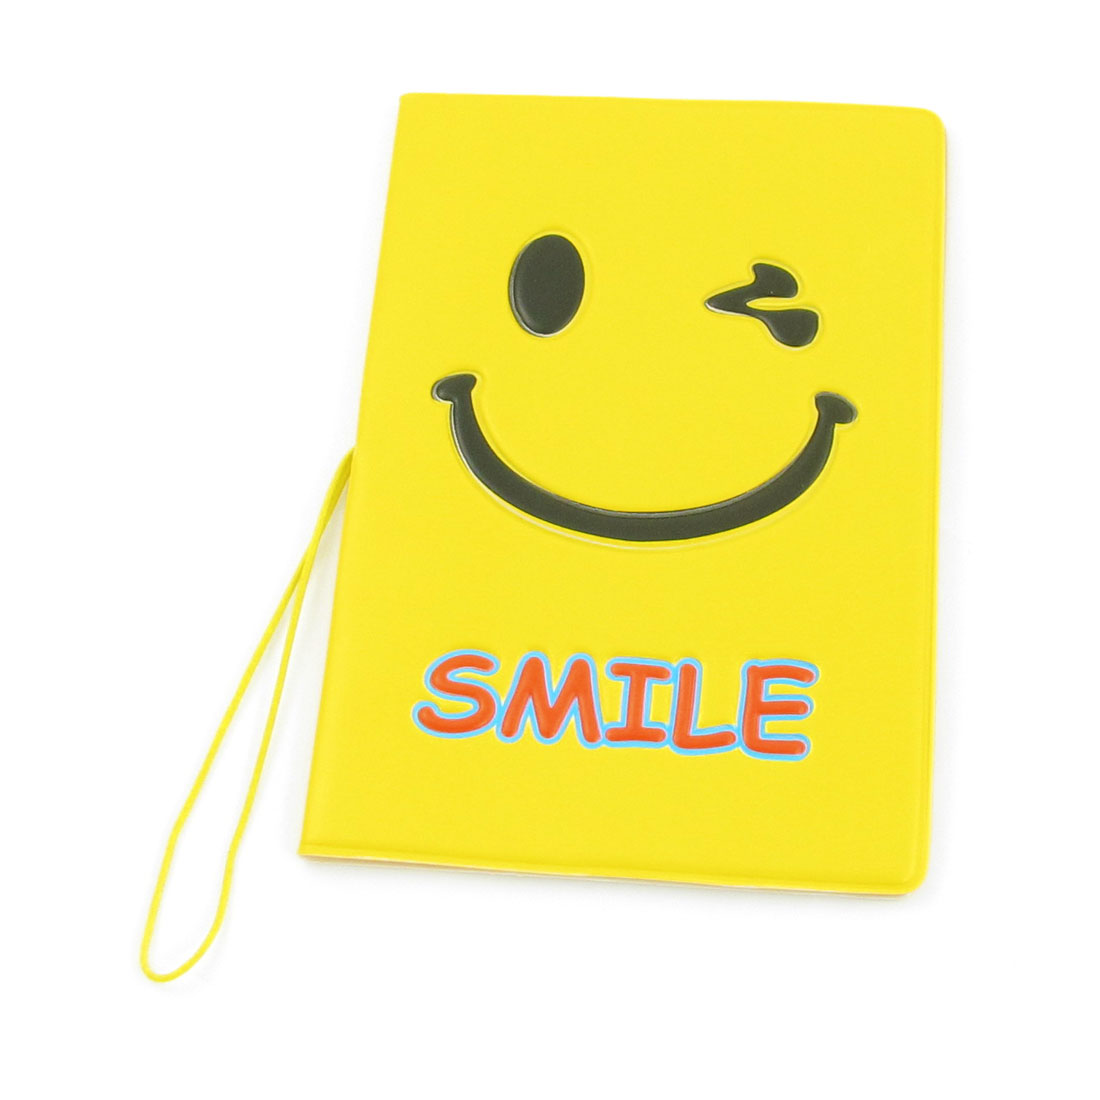 Faux Leather Smiley Pattern Wallet Case Holder Protector Yellow for Passport